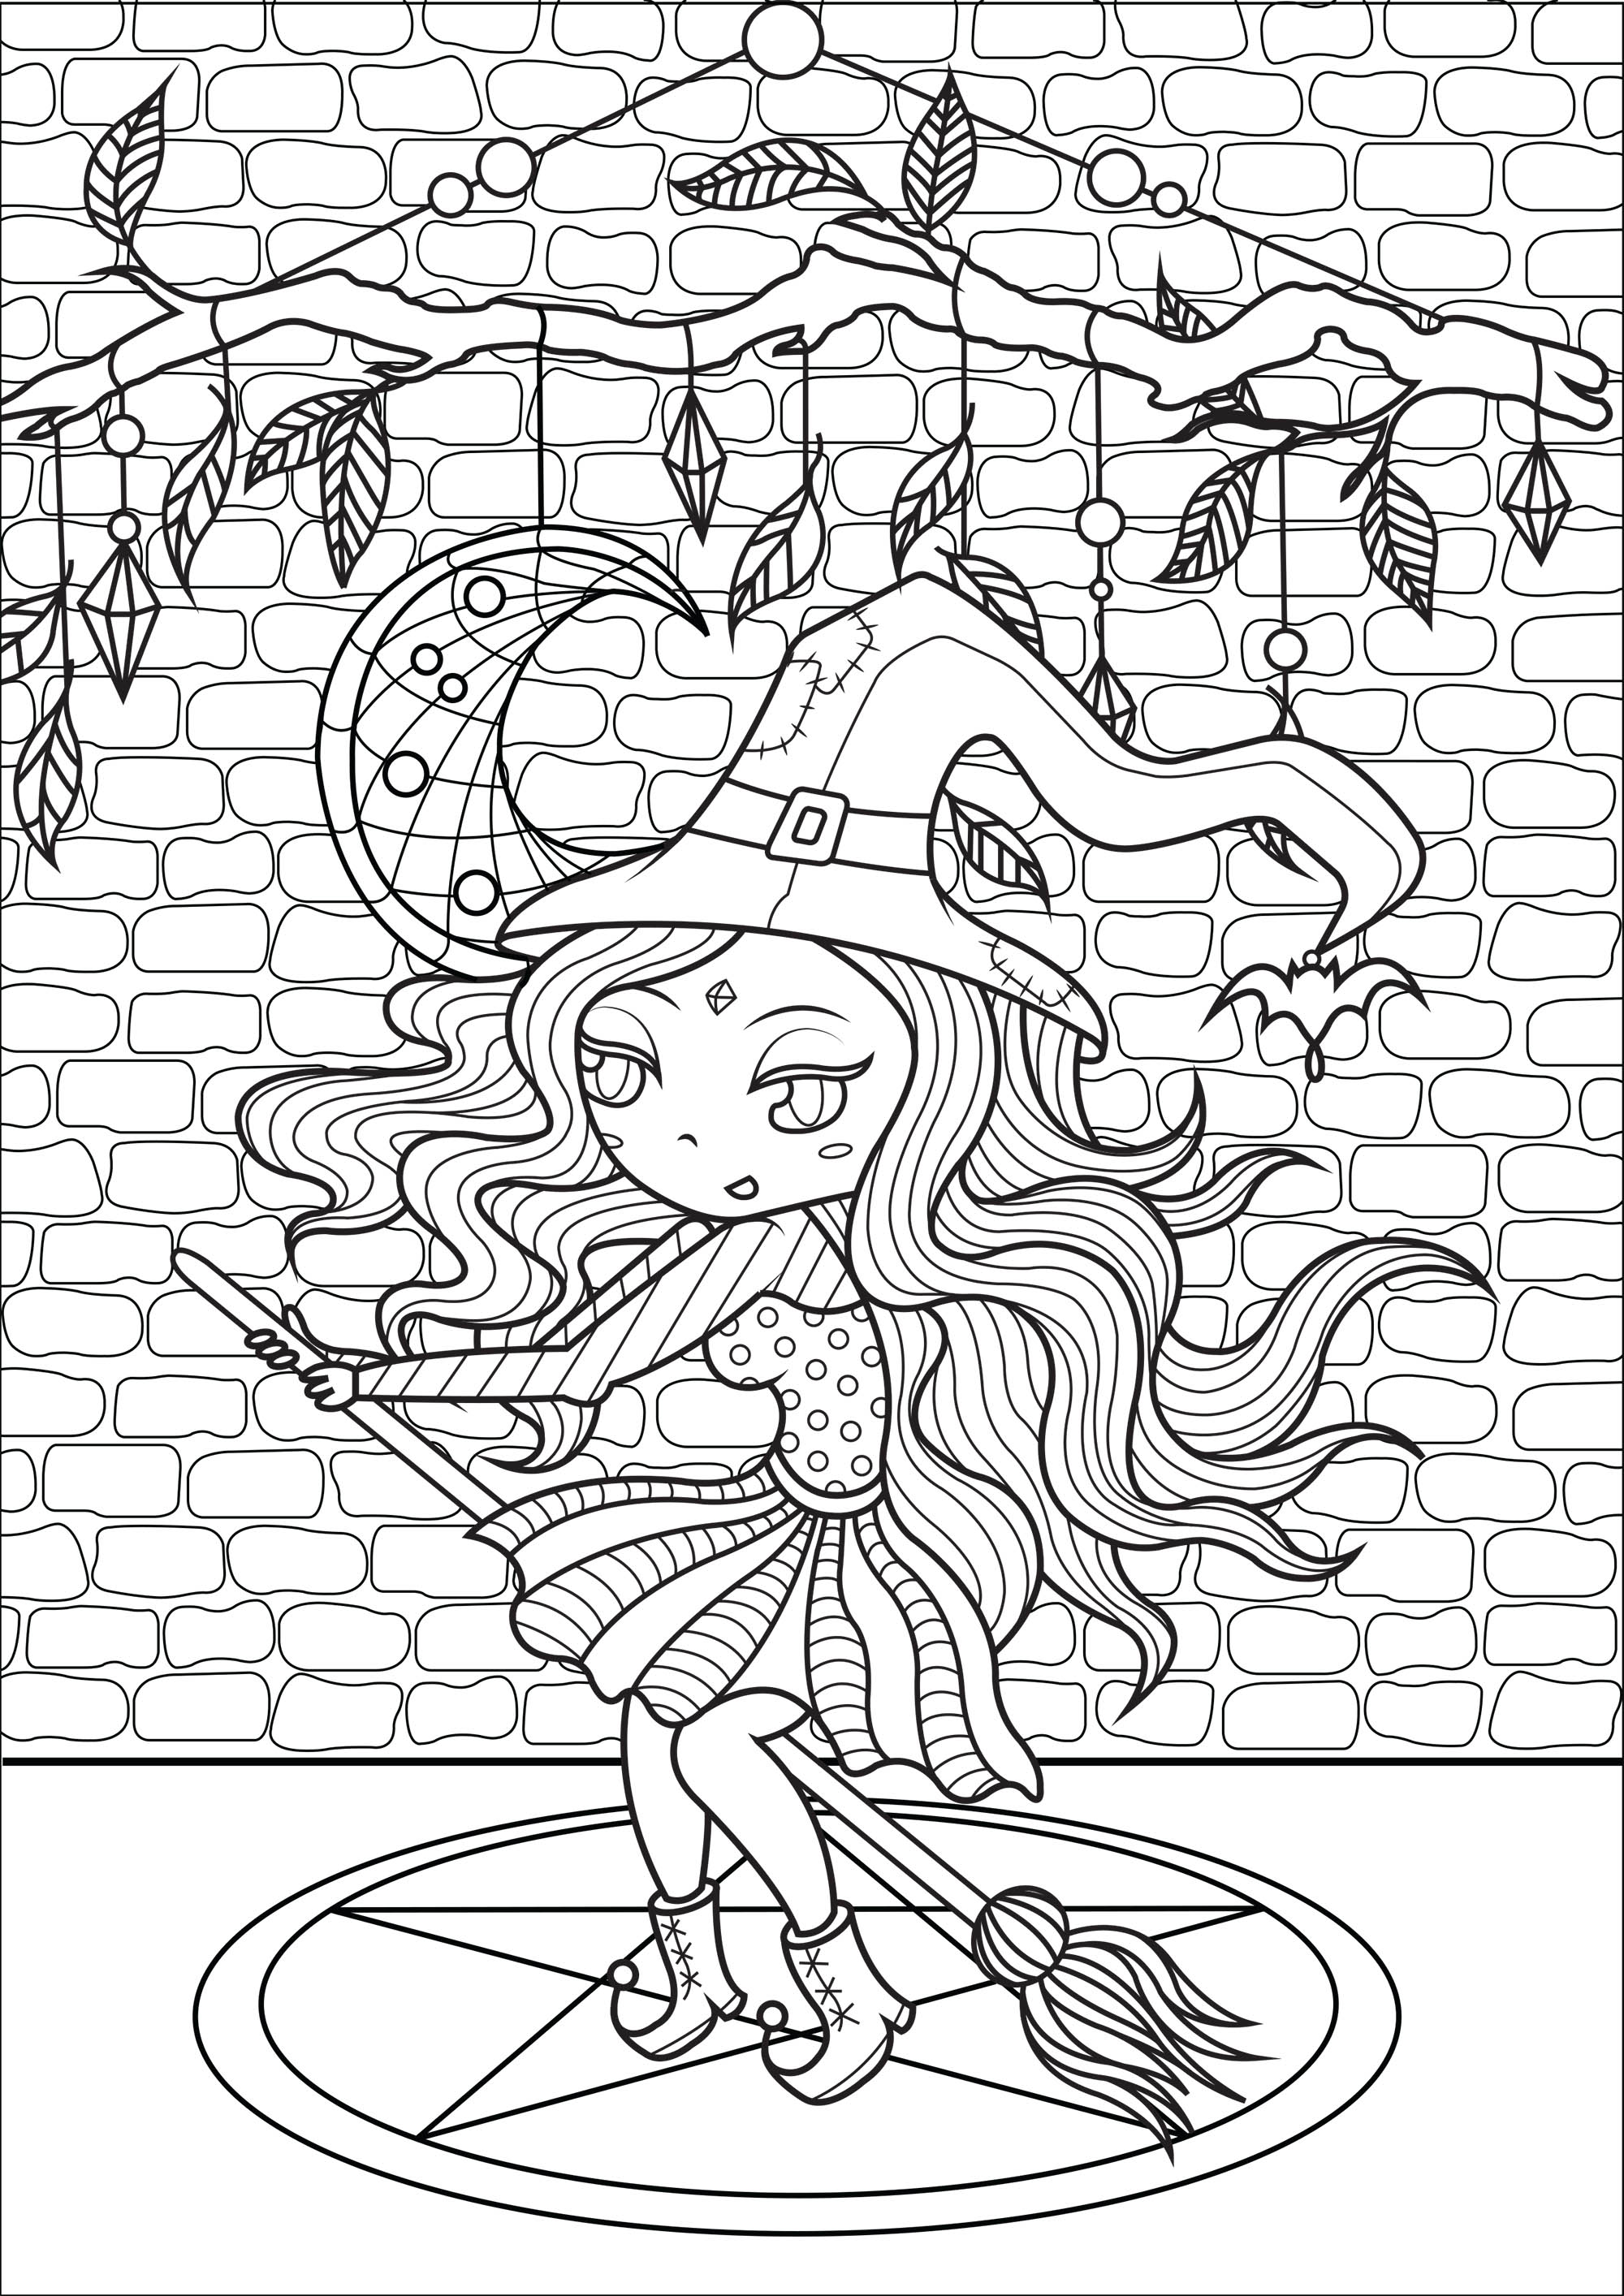 Happy witch complex halloween adult coloring pages for Mandala facili da disegnare